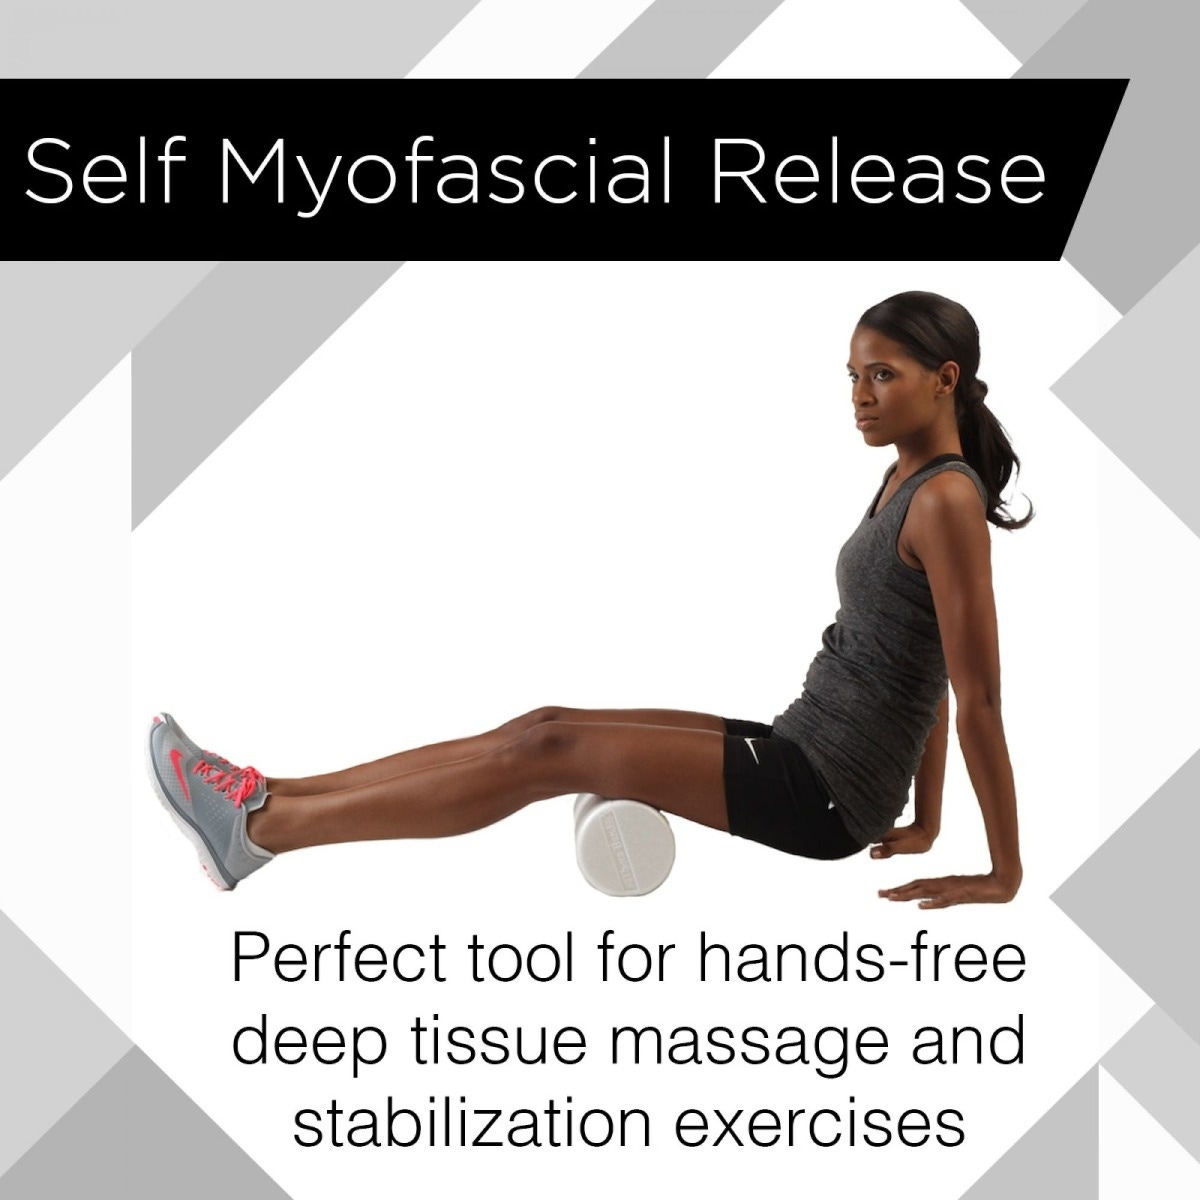 Person on floor, using foam roller on hamstring muscle, with text overlay that says Self Myofascial Release